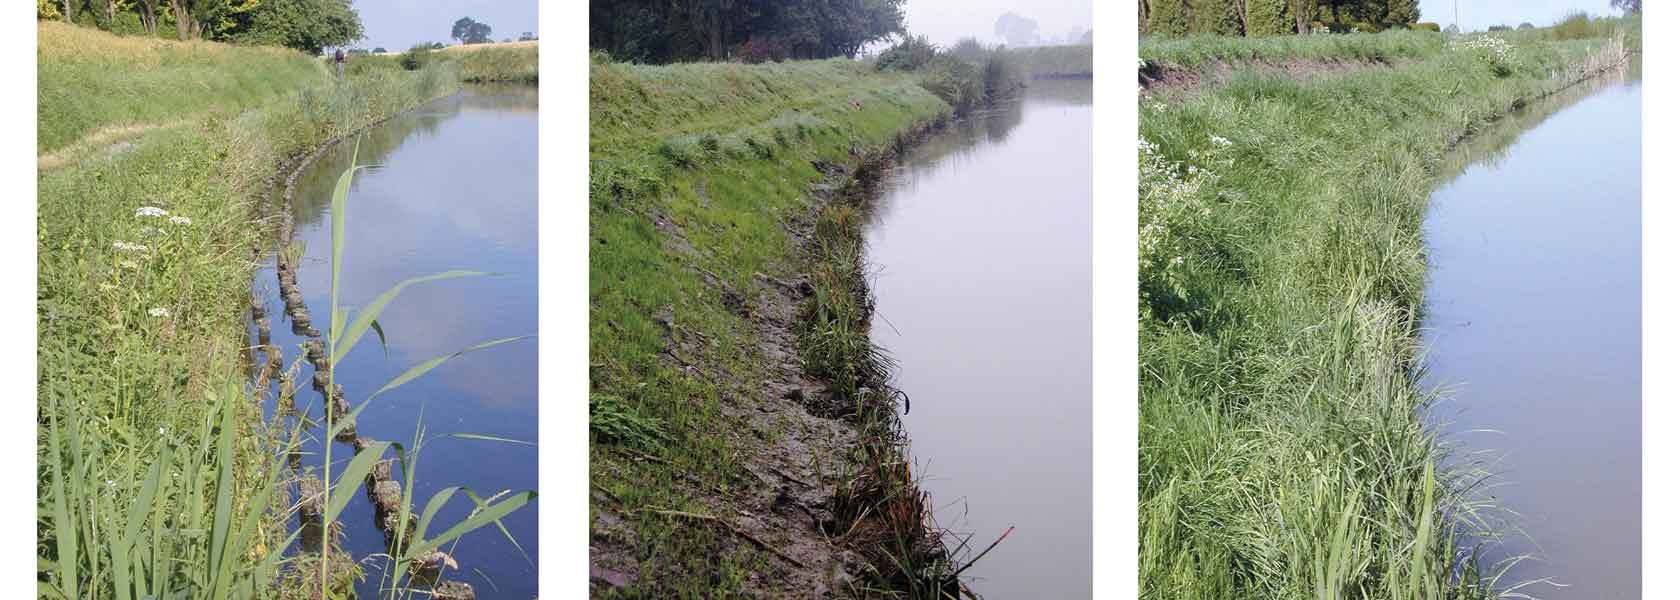 Aqualogs are used for soft bank protection and habitat creation as a more durable alternative to coir rolls